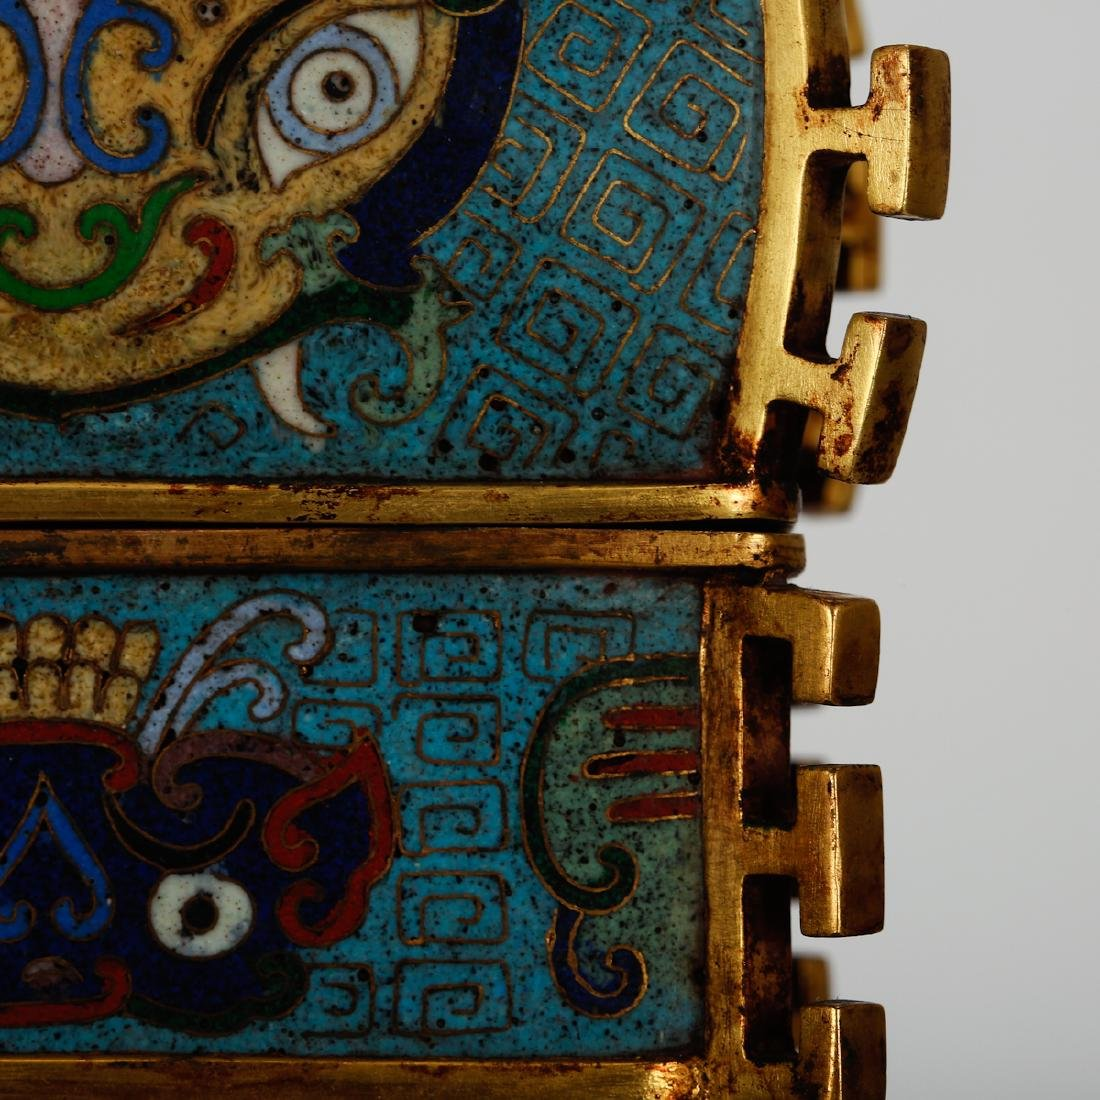 CHINESE CLOISONNE ARCHAIC STYLE VESSEL - 5